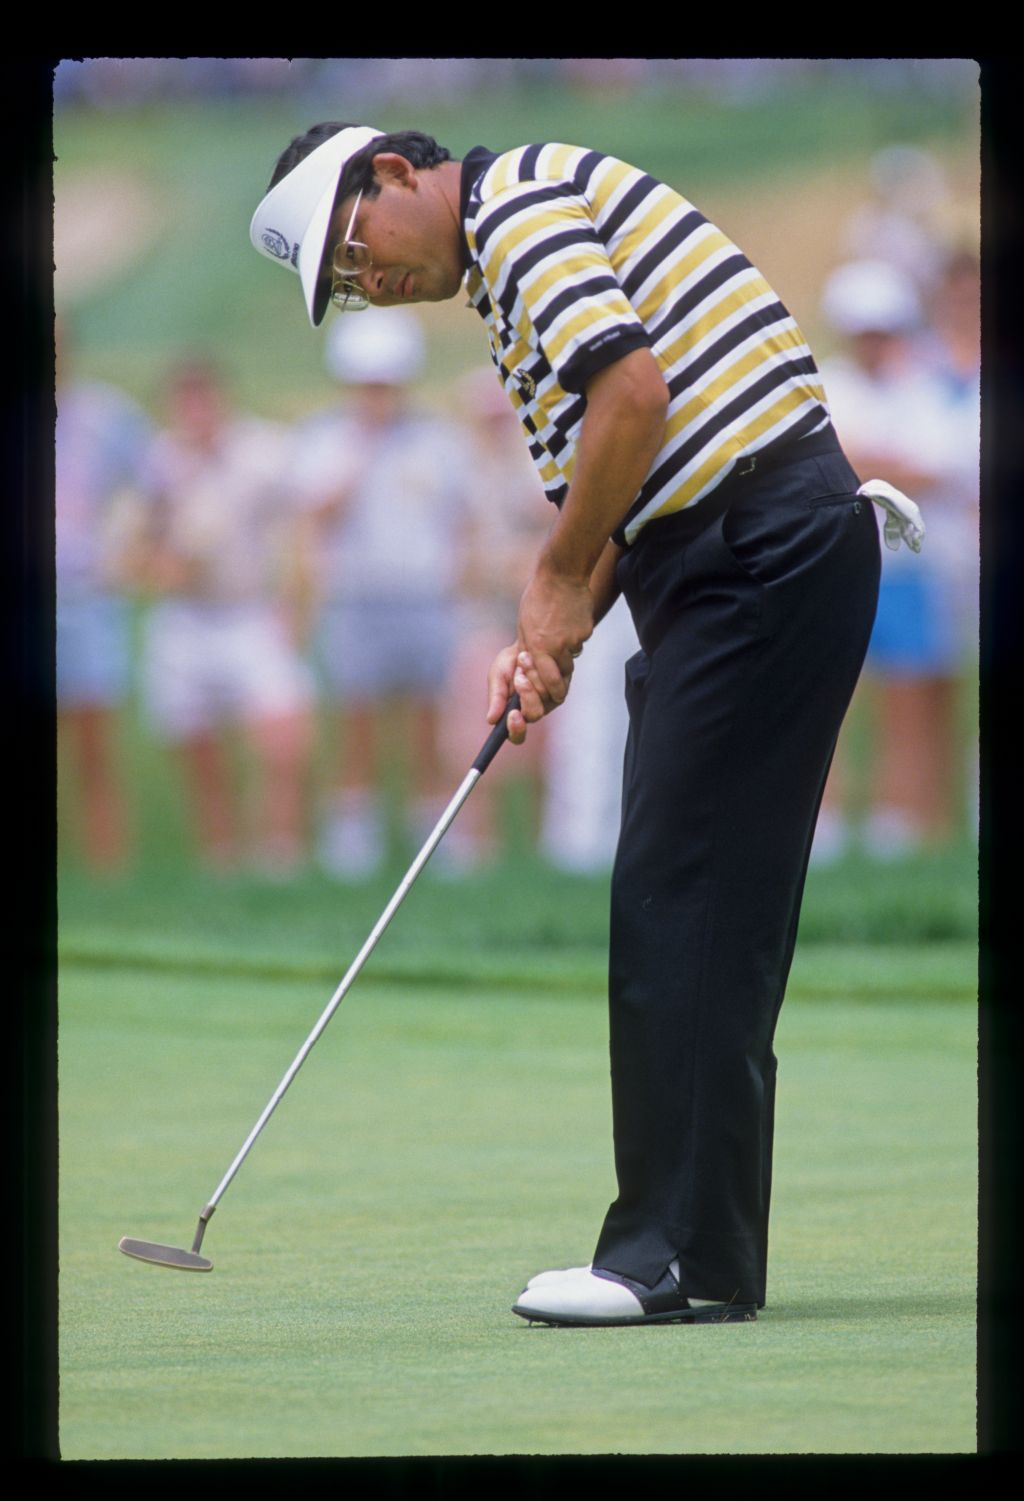 Tommy Nakajima putting during the 1988 US Open